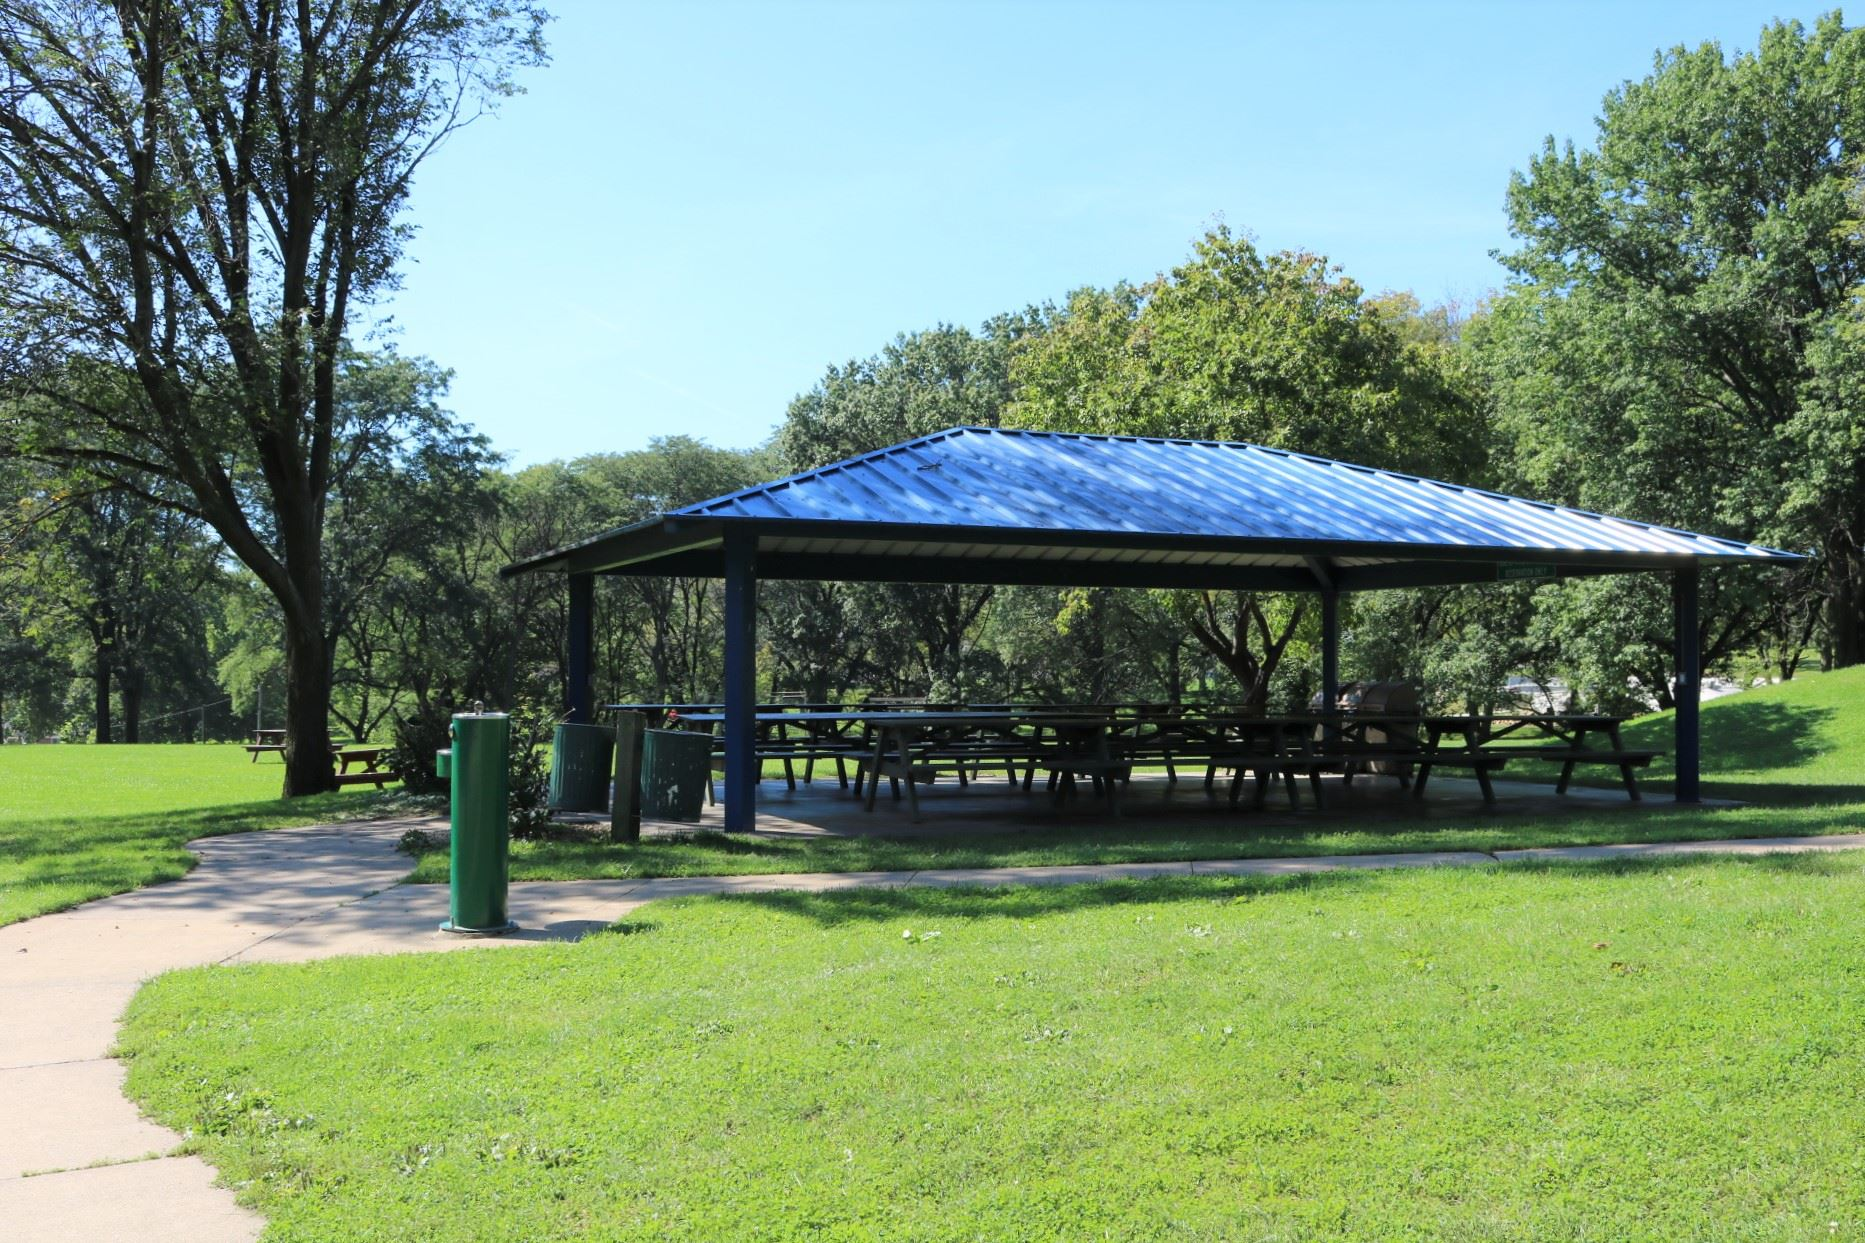 Steel Open Air seating: 70 people; price: $70.00. Handicapped accessible, 15 amp electricity, locate